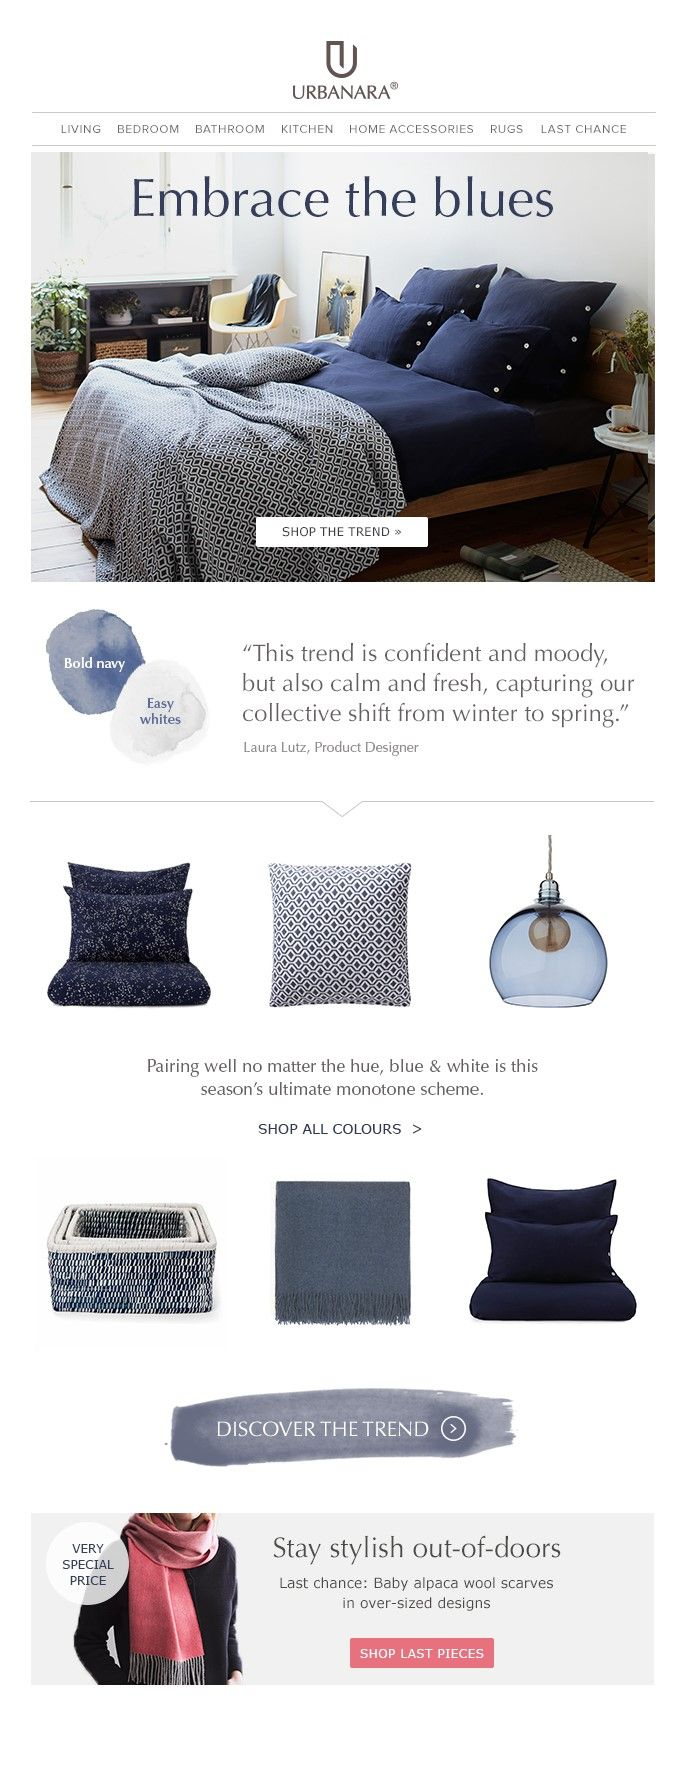 URBANARA newsletter template for colour theme and home textiles and decor. Follows us for tips and inspiration for your home decor, interior or fashion newsletters.